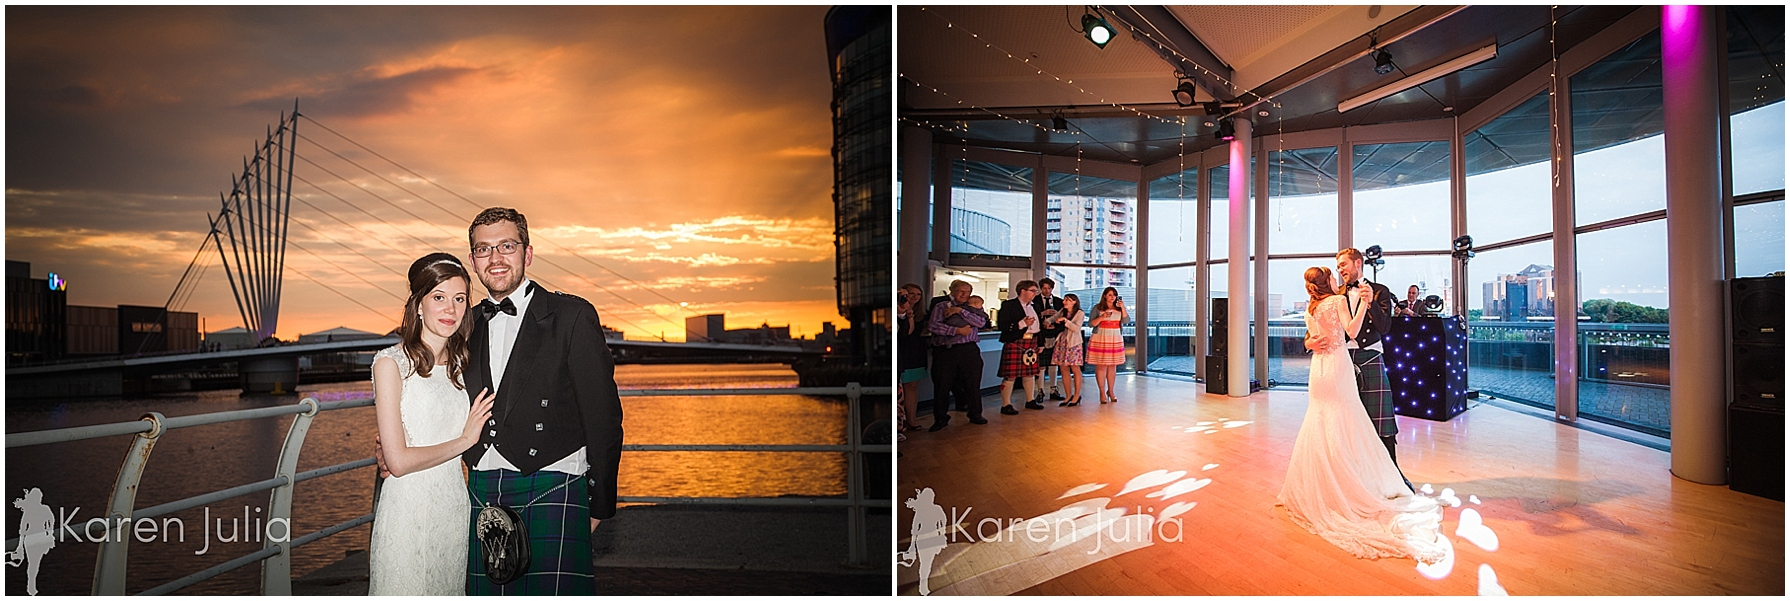 sunset wedding portrait lowry theatre